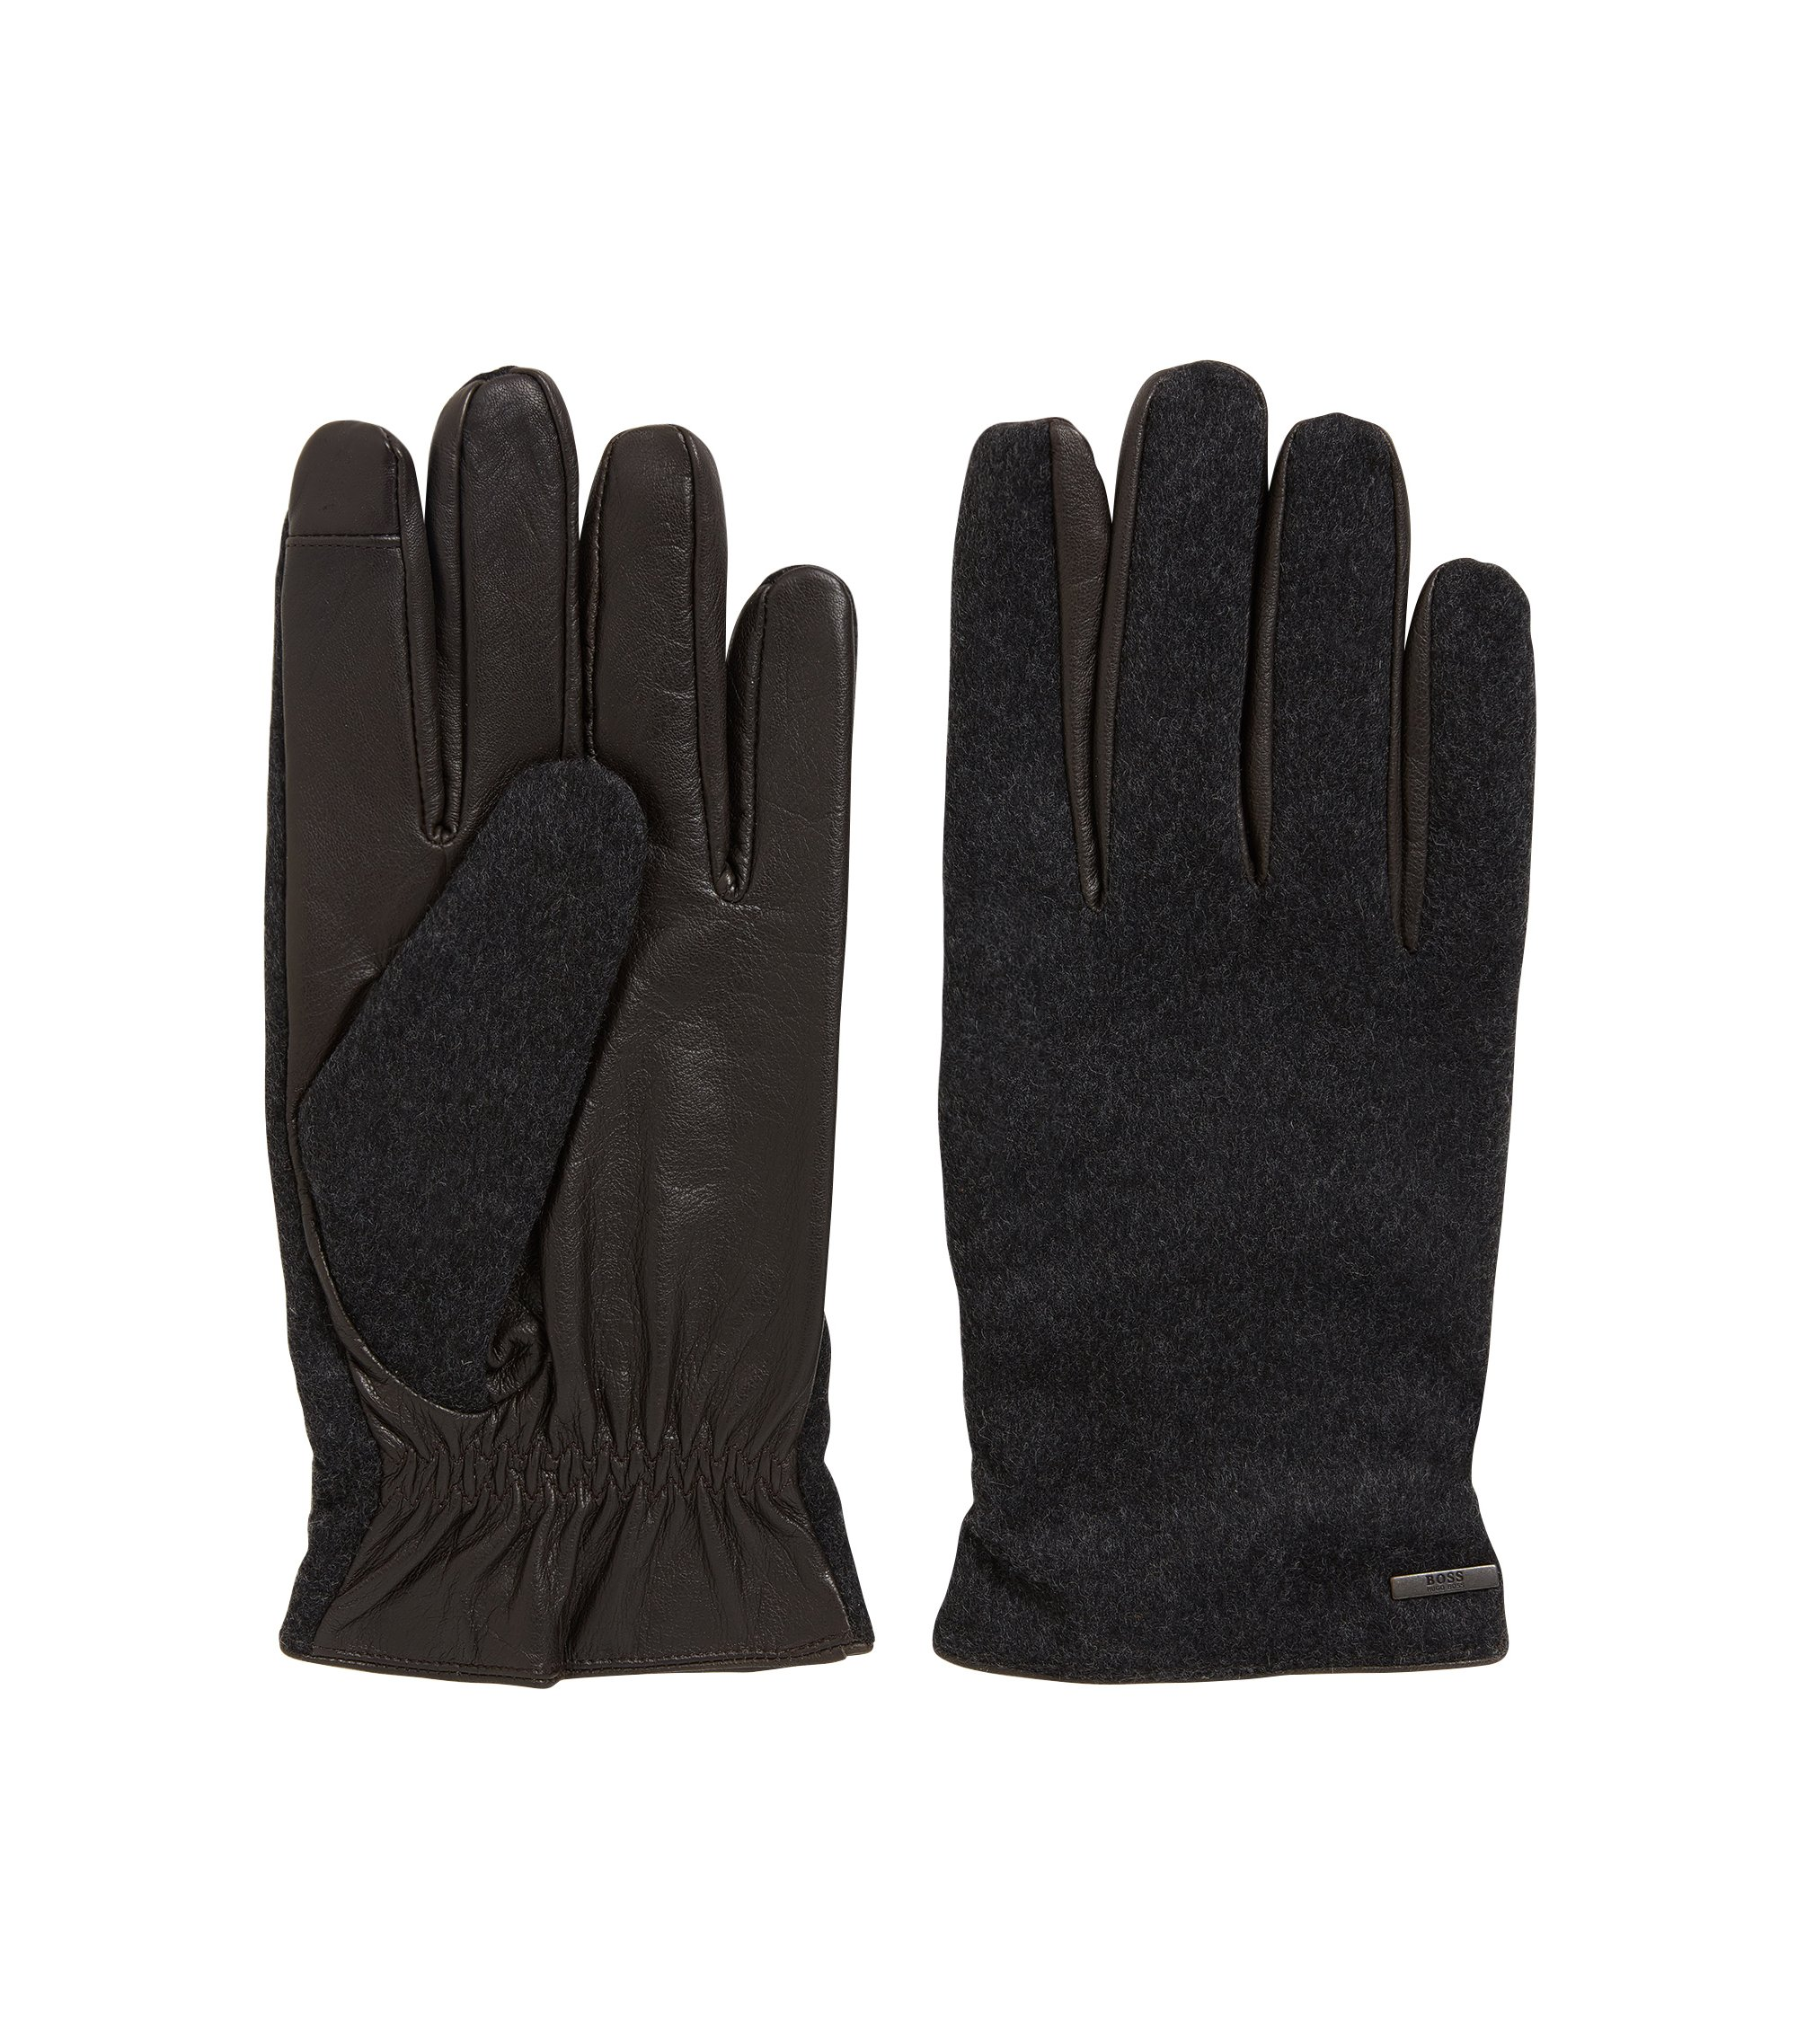 Leather & Wool Blend Knit Glove | Hebold TT, Dark Brown